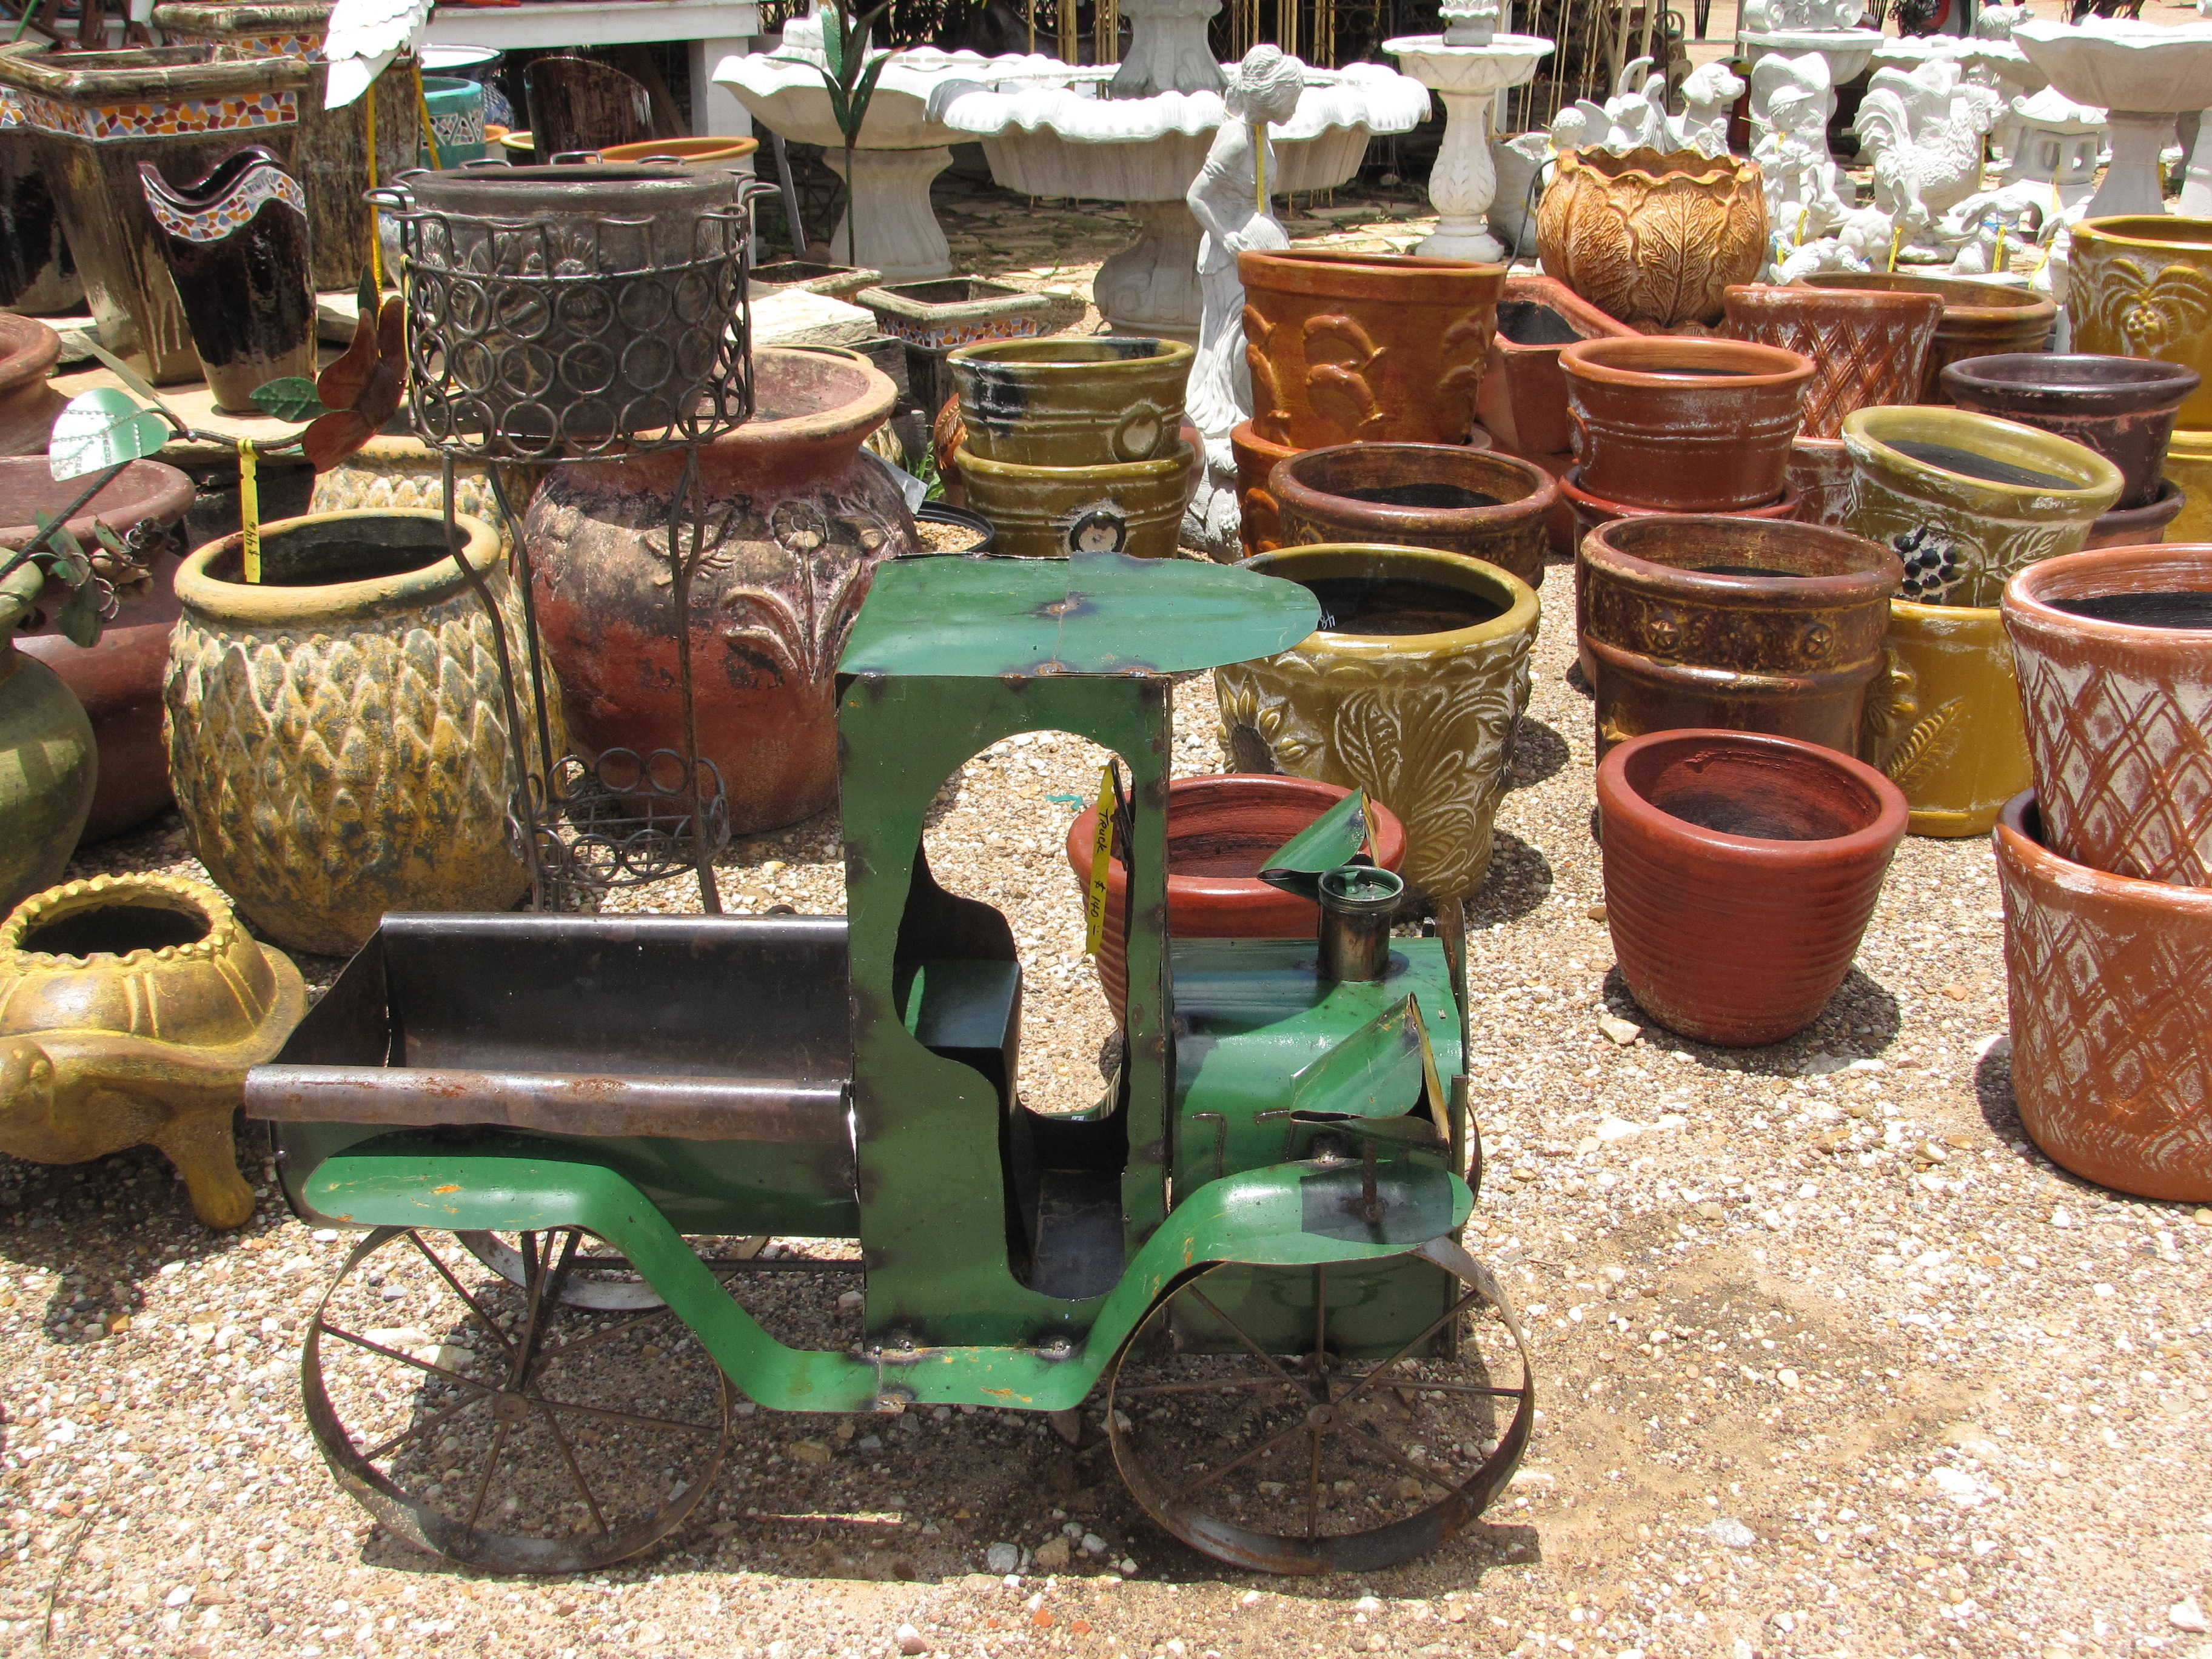 Many kinds of yard decor such as iron, cement and pottery at J&J Nursery, Spring, TX.